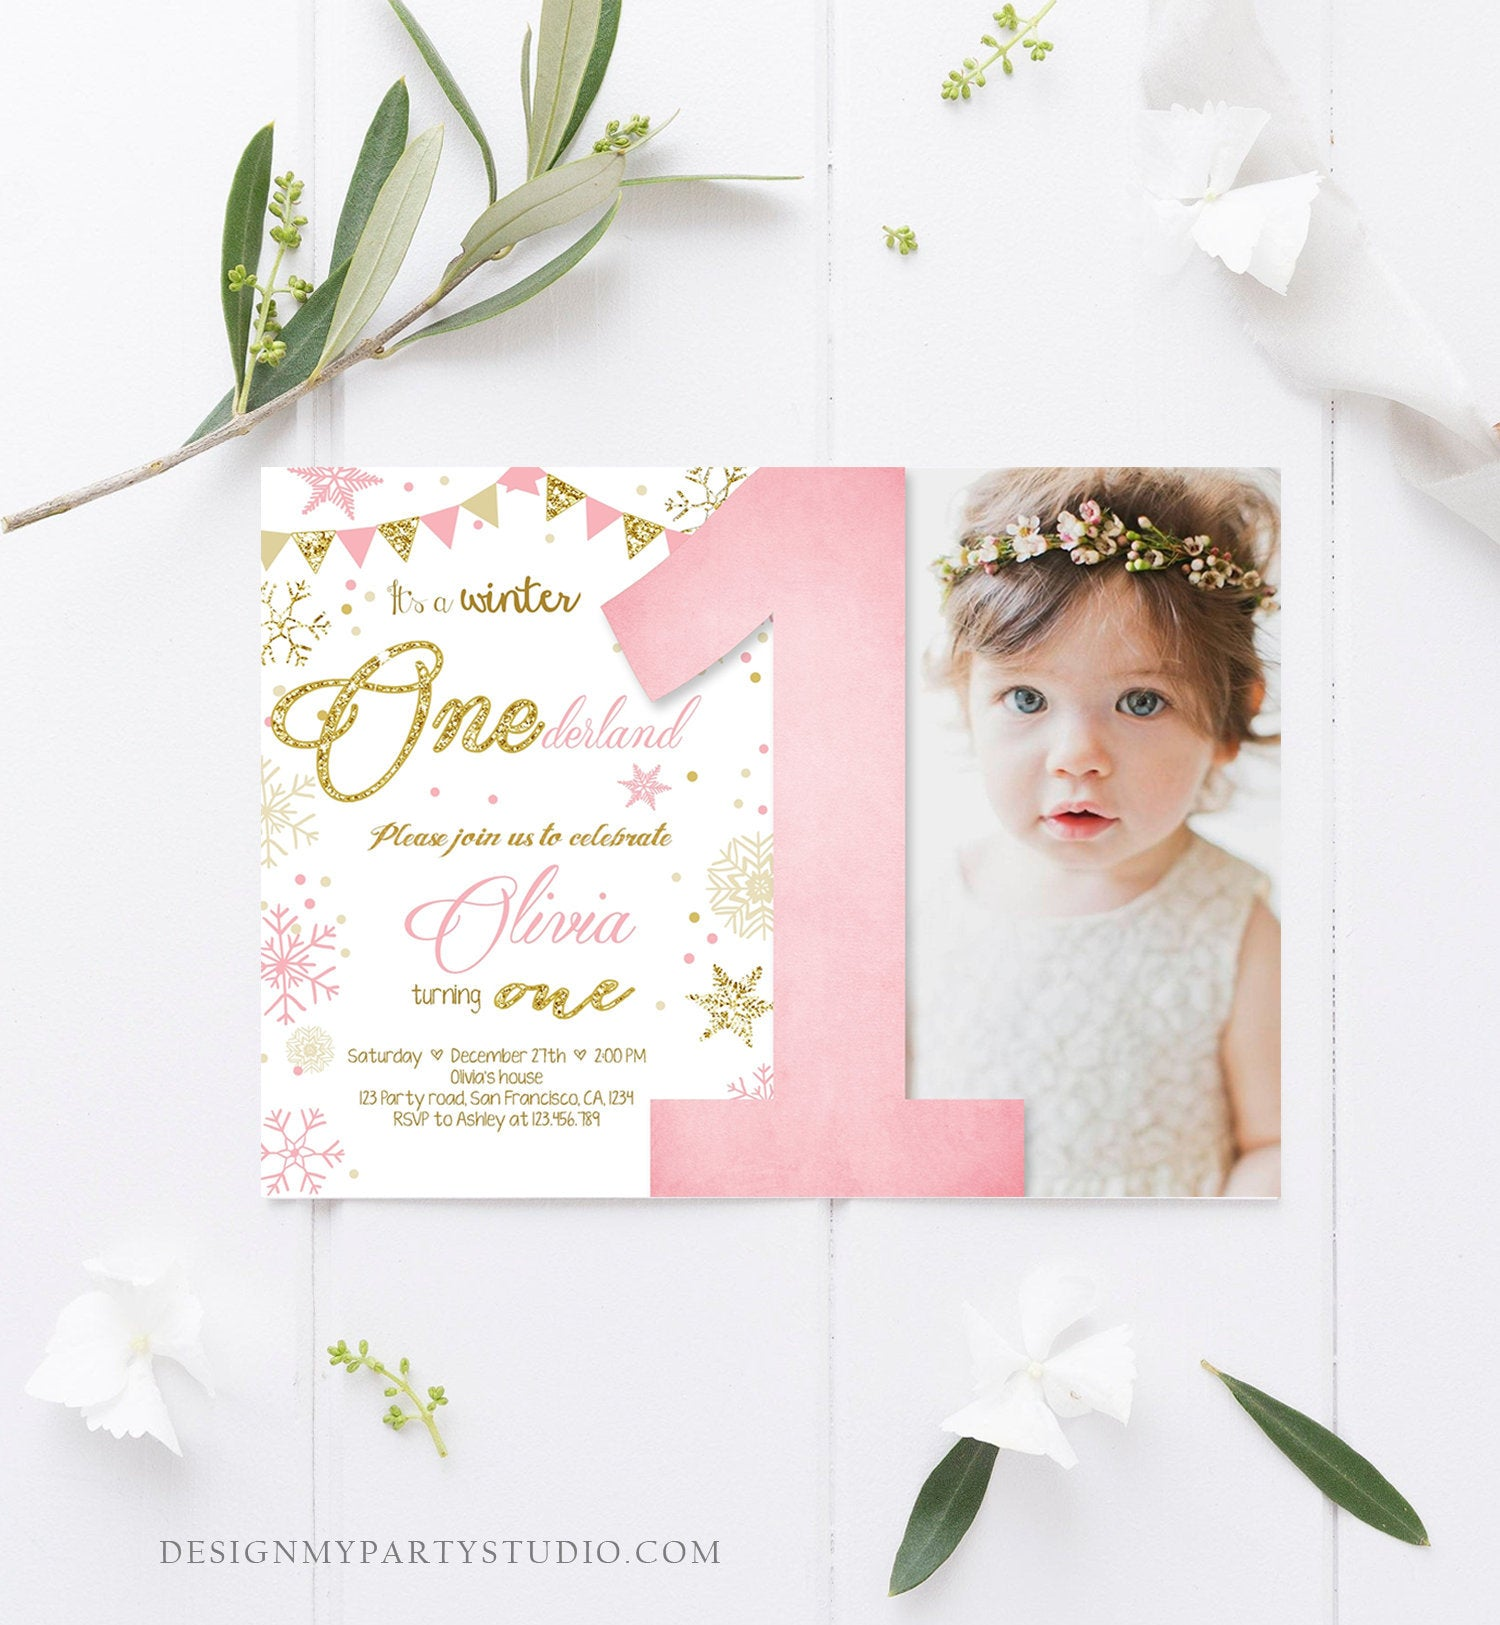 Editable Winter ONEderland Birthday Invitation First Birthday Snowflake Girl Pink and Gold Download Printable Invitation Template Corjl 0034